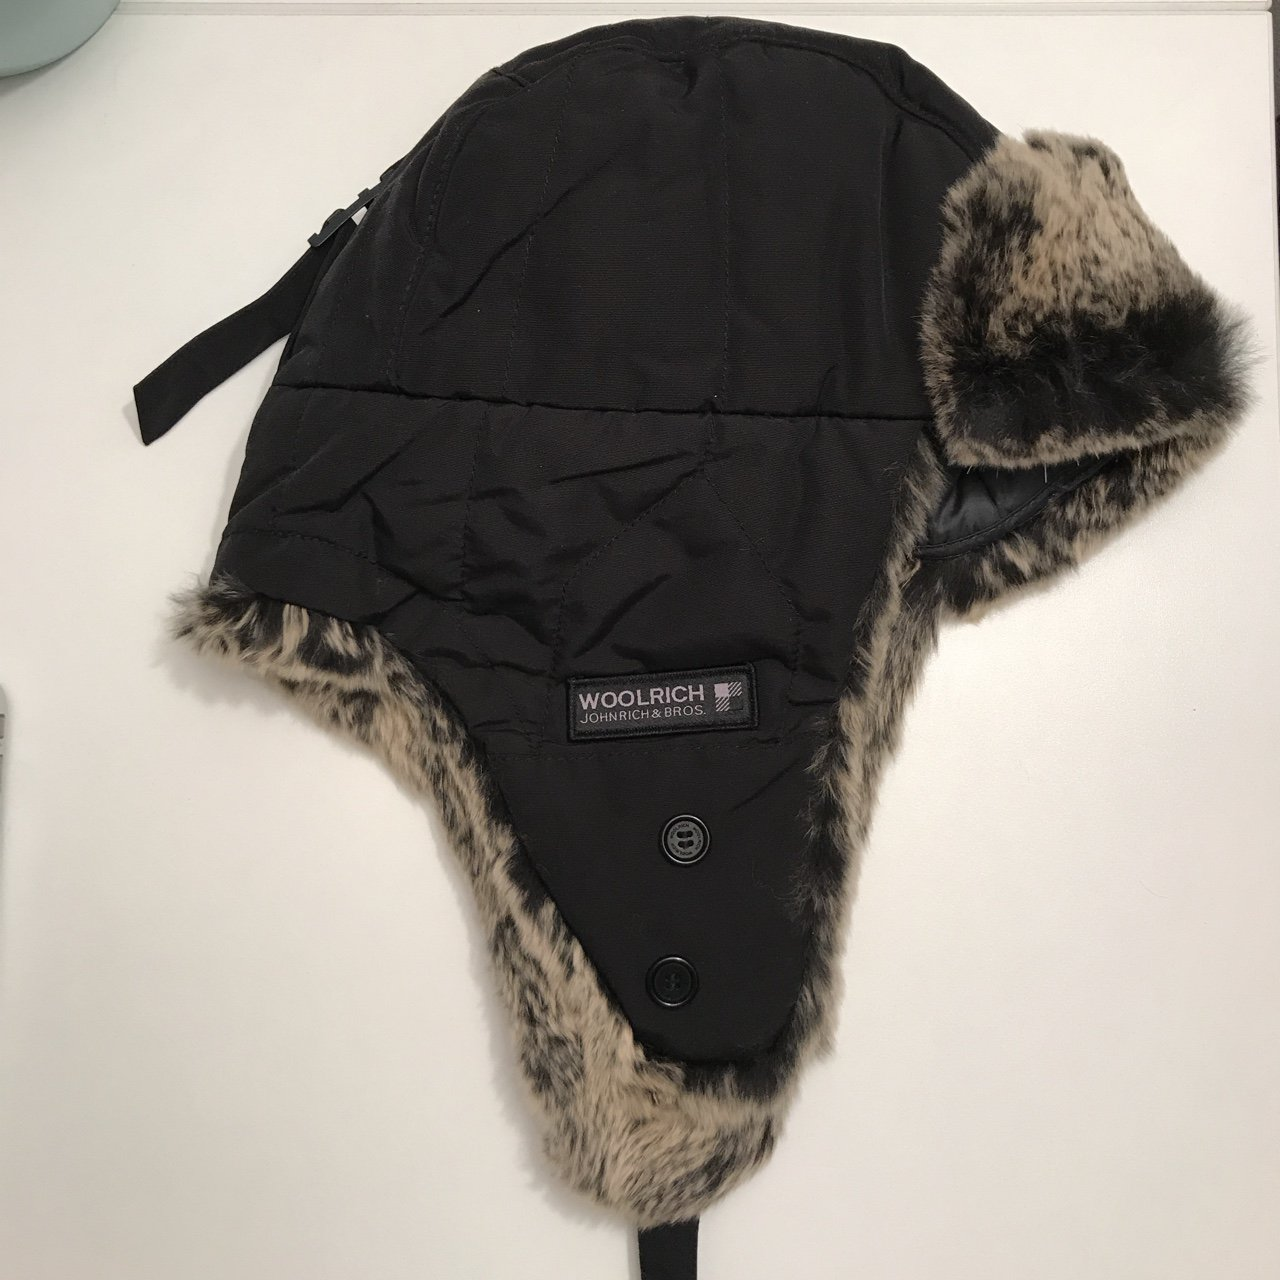 🖤 SOLD OUT WOOLRICH BLACK ARTIC TRAPPER HAT 🖤 Size been on - Depop b7365b4b57cc